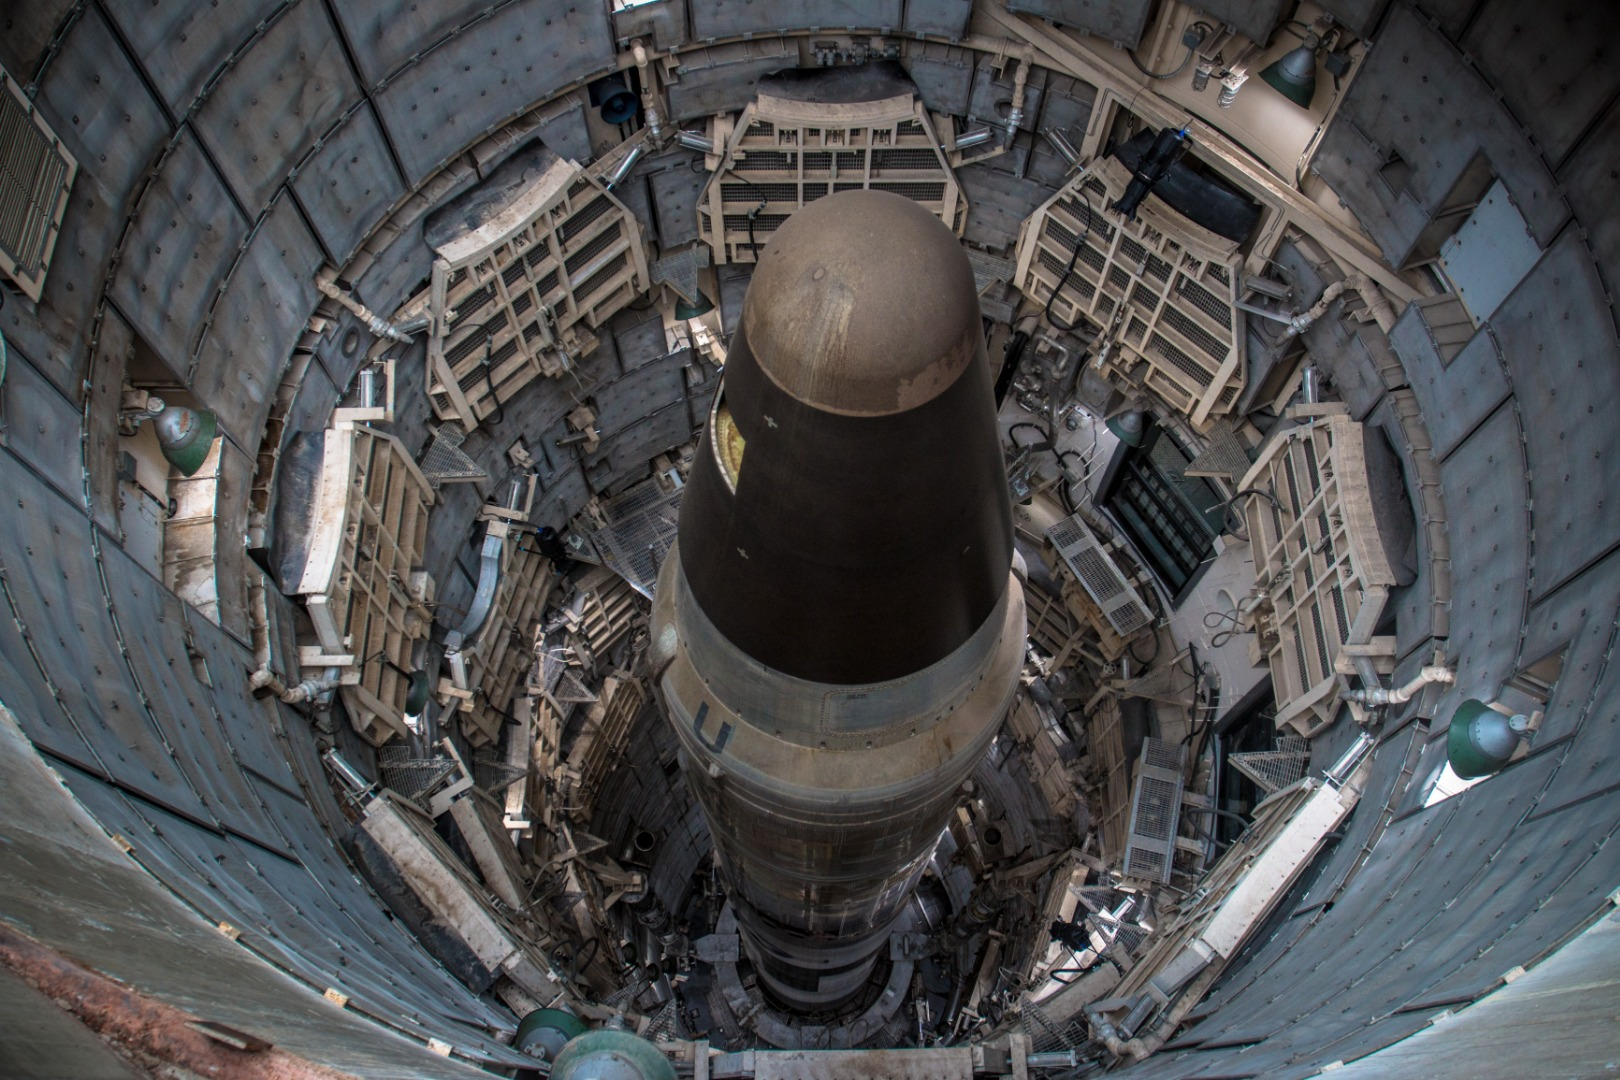 Gallery: Titan Missile Museum takes visitors back to Cold War times